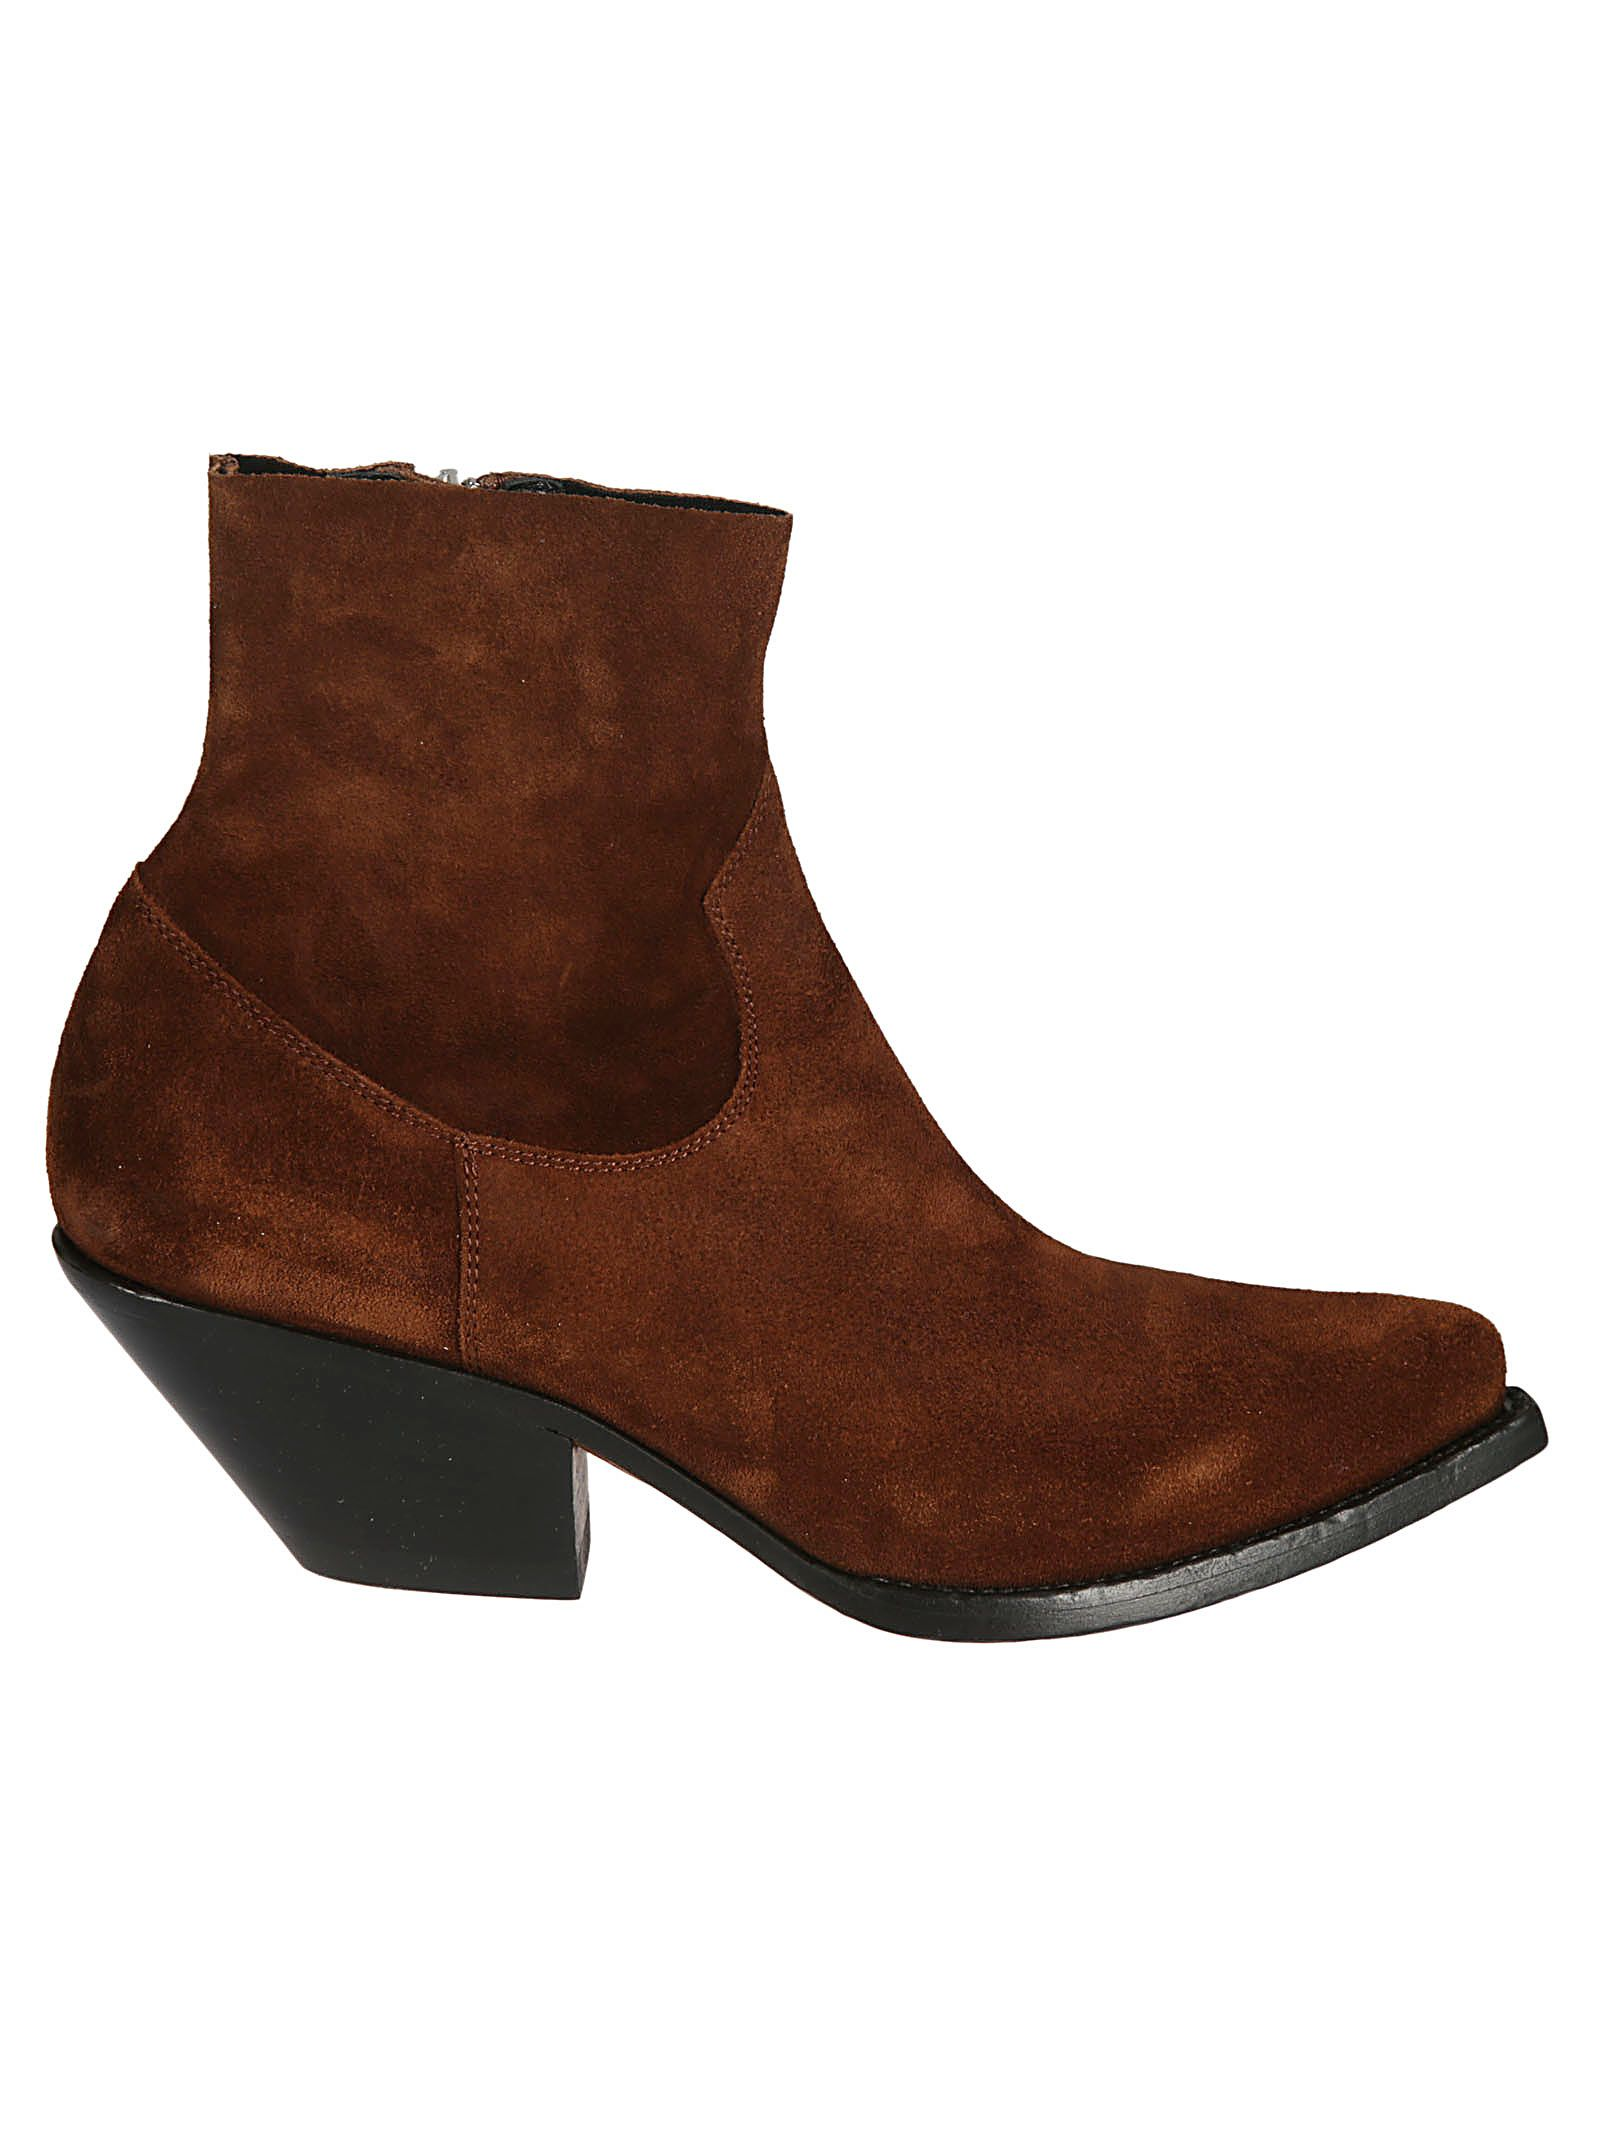 Buttero WOMEN'S B8108VARCDC27 BROWN SUEDE ANKLE BOOTS